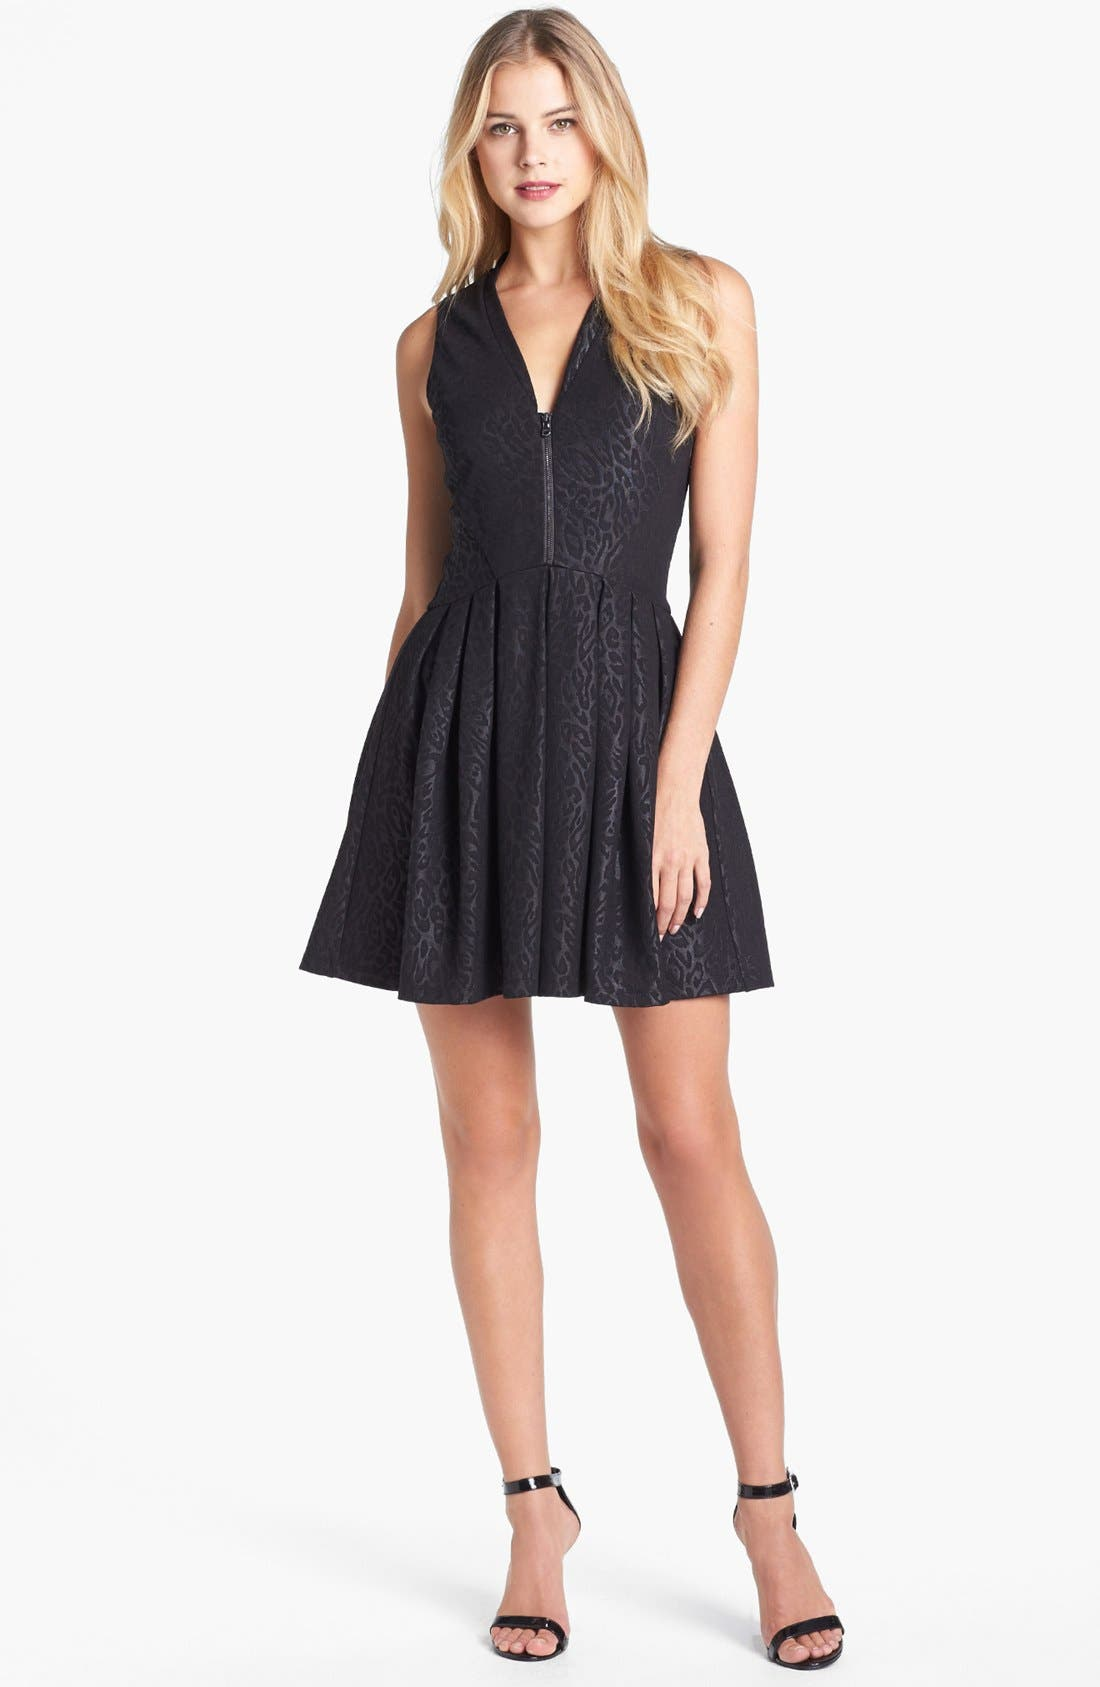 Alternate Image 1 Selected - GUESS Jacquard Ponte Knit Fit & Flare Dress